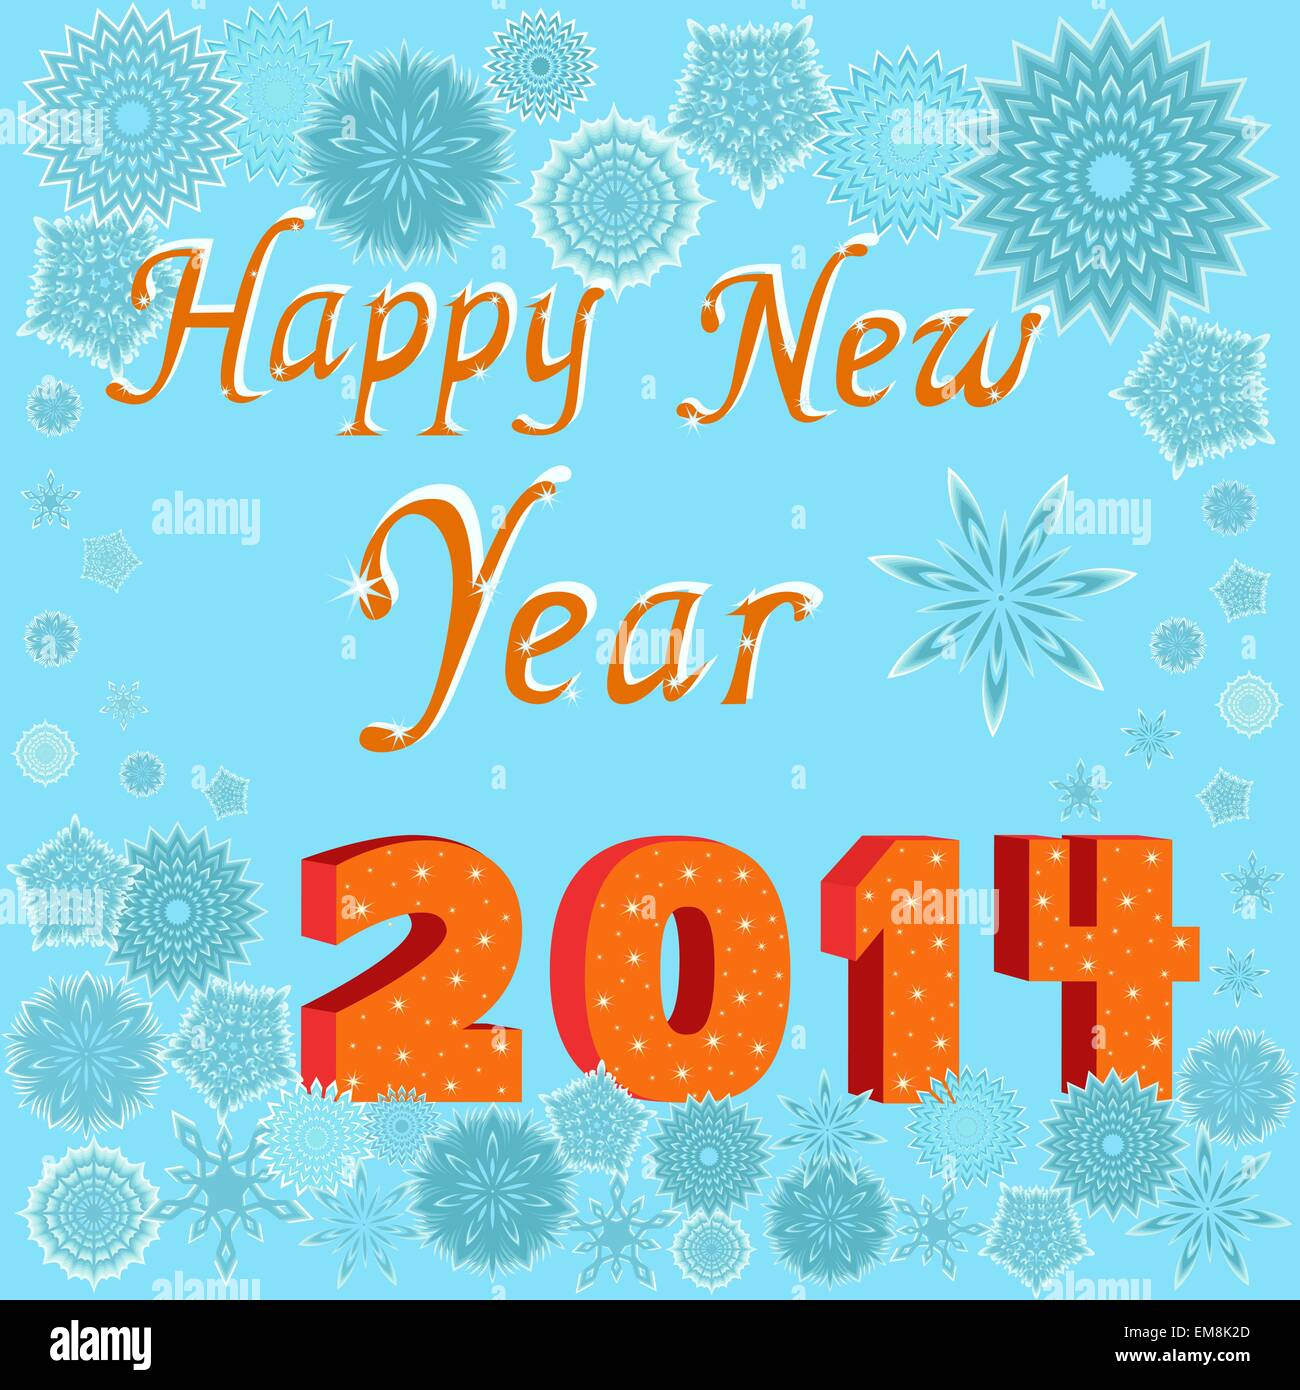 Greeting card happy new year 2014 stock vector art illustration greeting card happy new year 2014 m4hsunfo